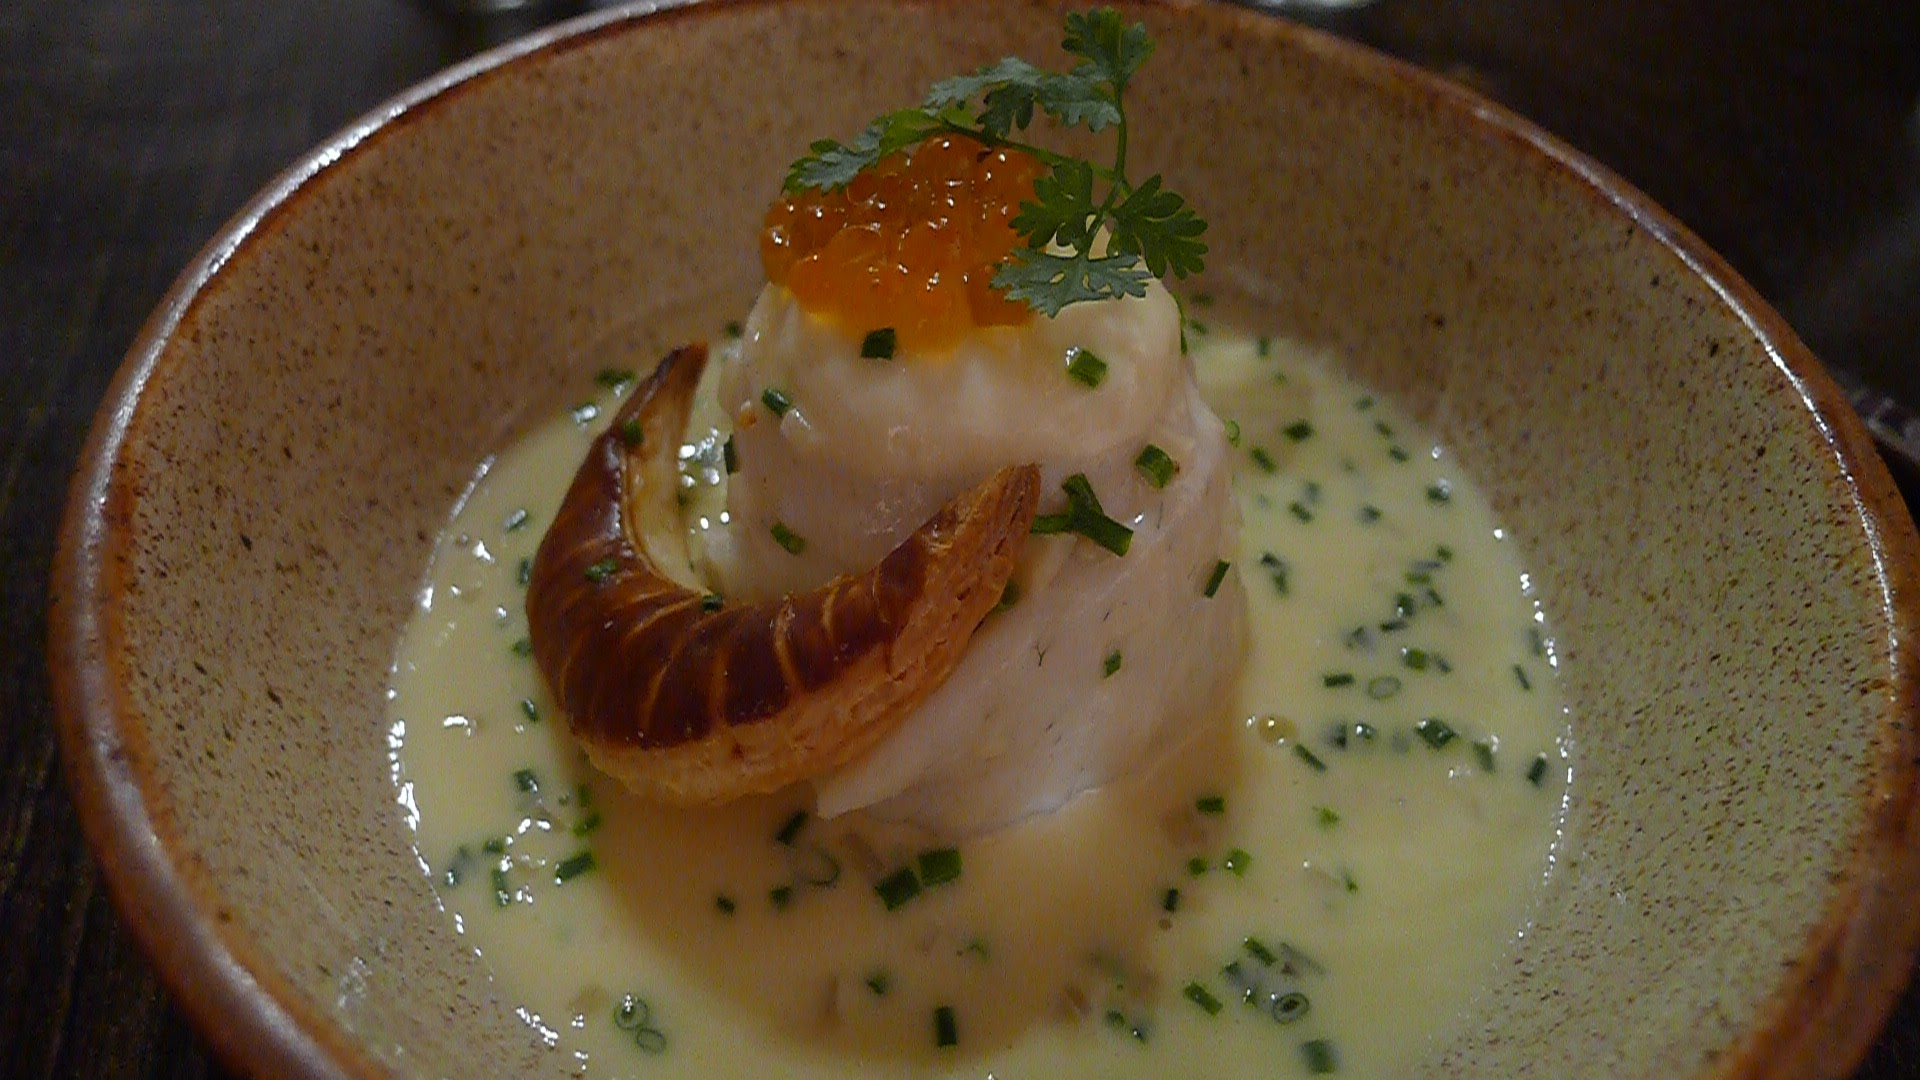 Lake Pickerel (Walleye) Paupiette with a Salmon Roe Beurre Blanc and Fleuron, served alongside the gorgeous 2013 Les Etoiles from HInterland.